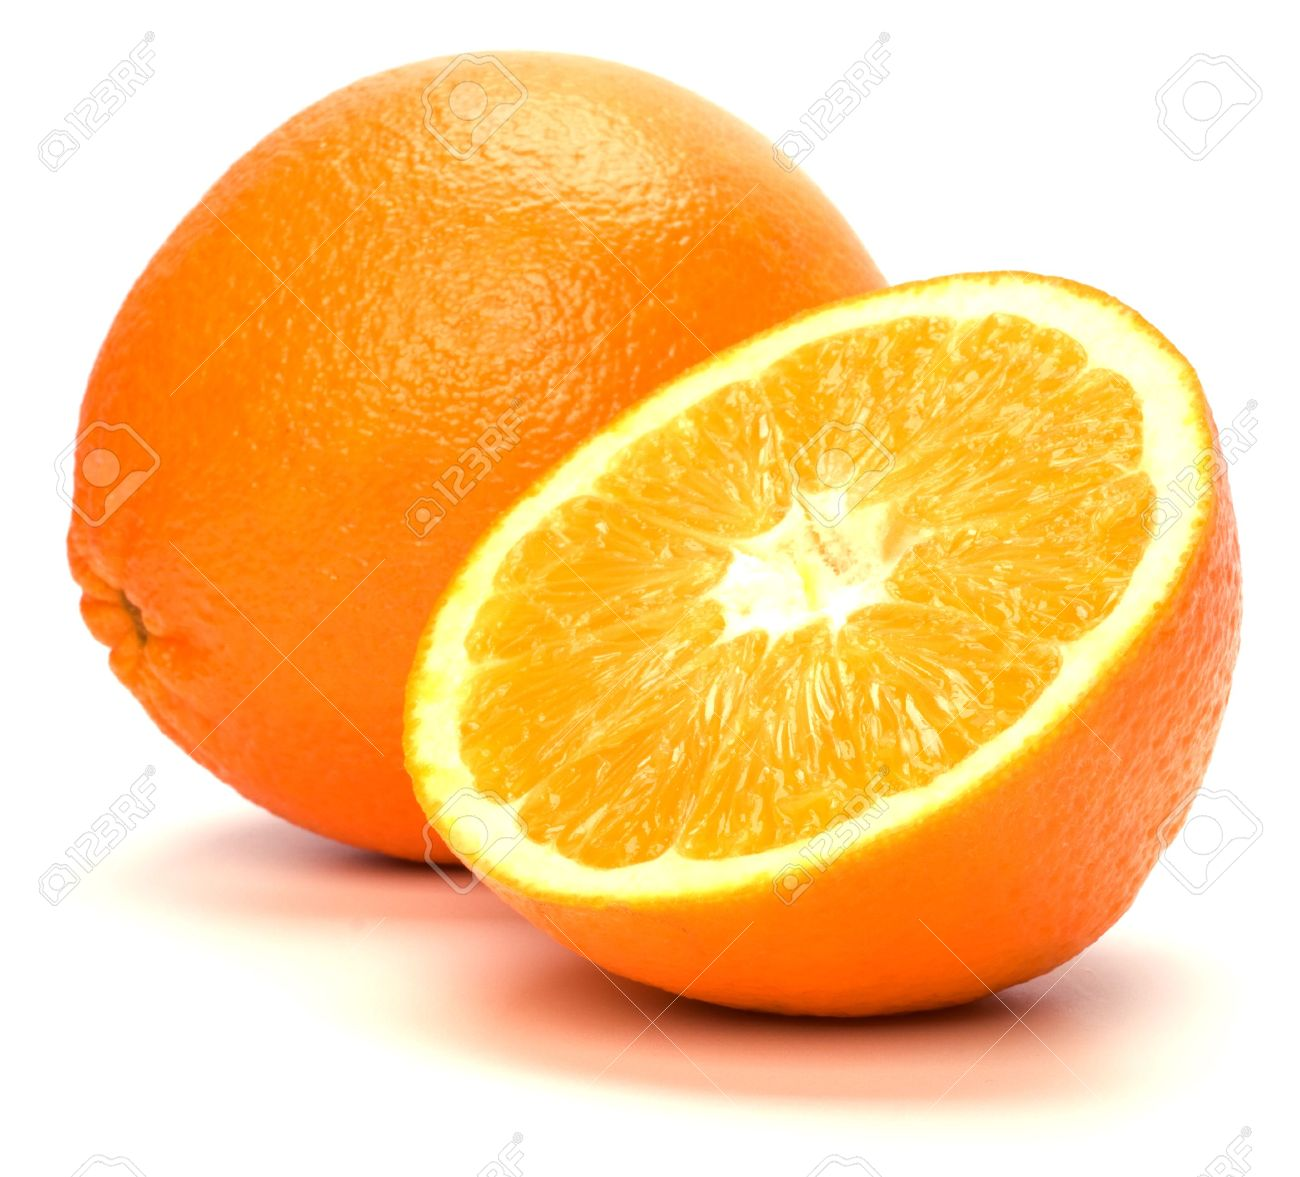 orange isolated on white background Stock Photo - 6258721